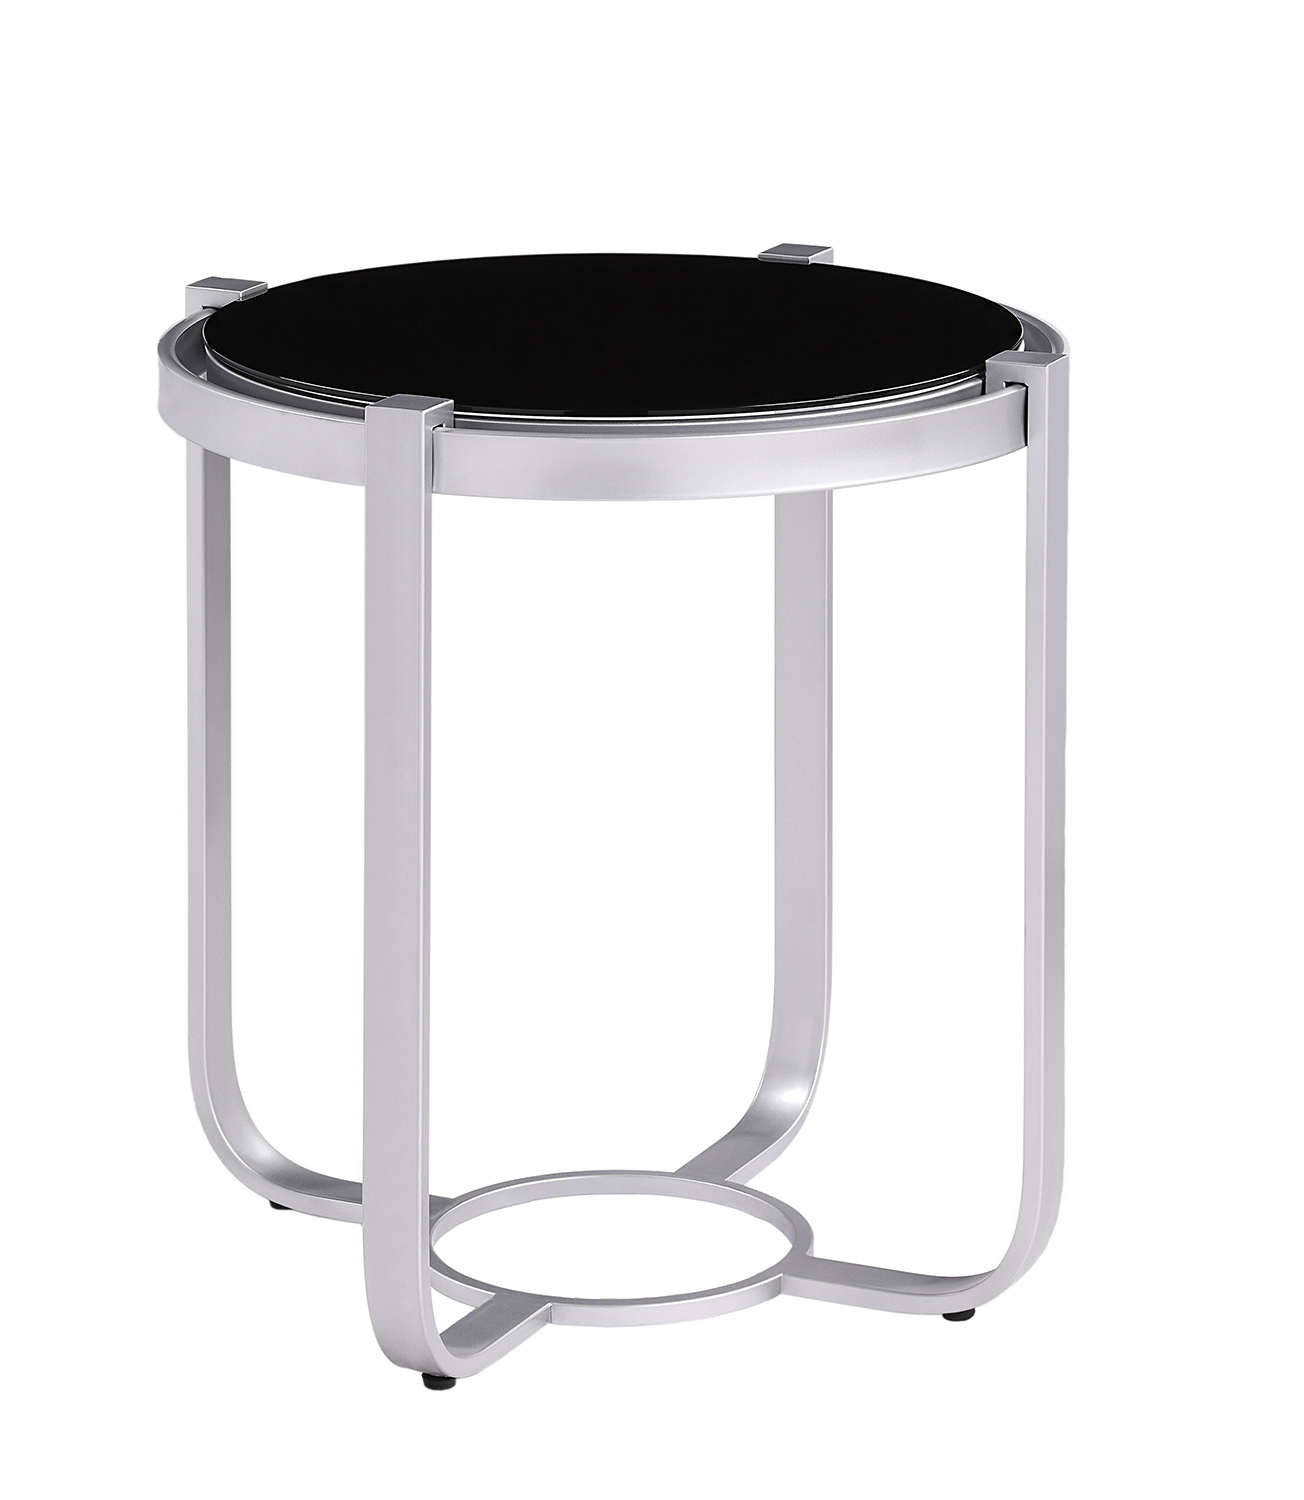 Homelegance Caracal Round End Table with Black Glass Insert - Silver